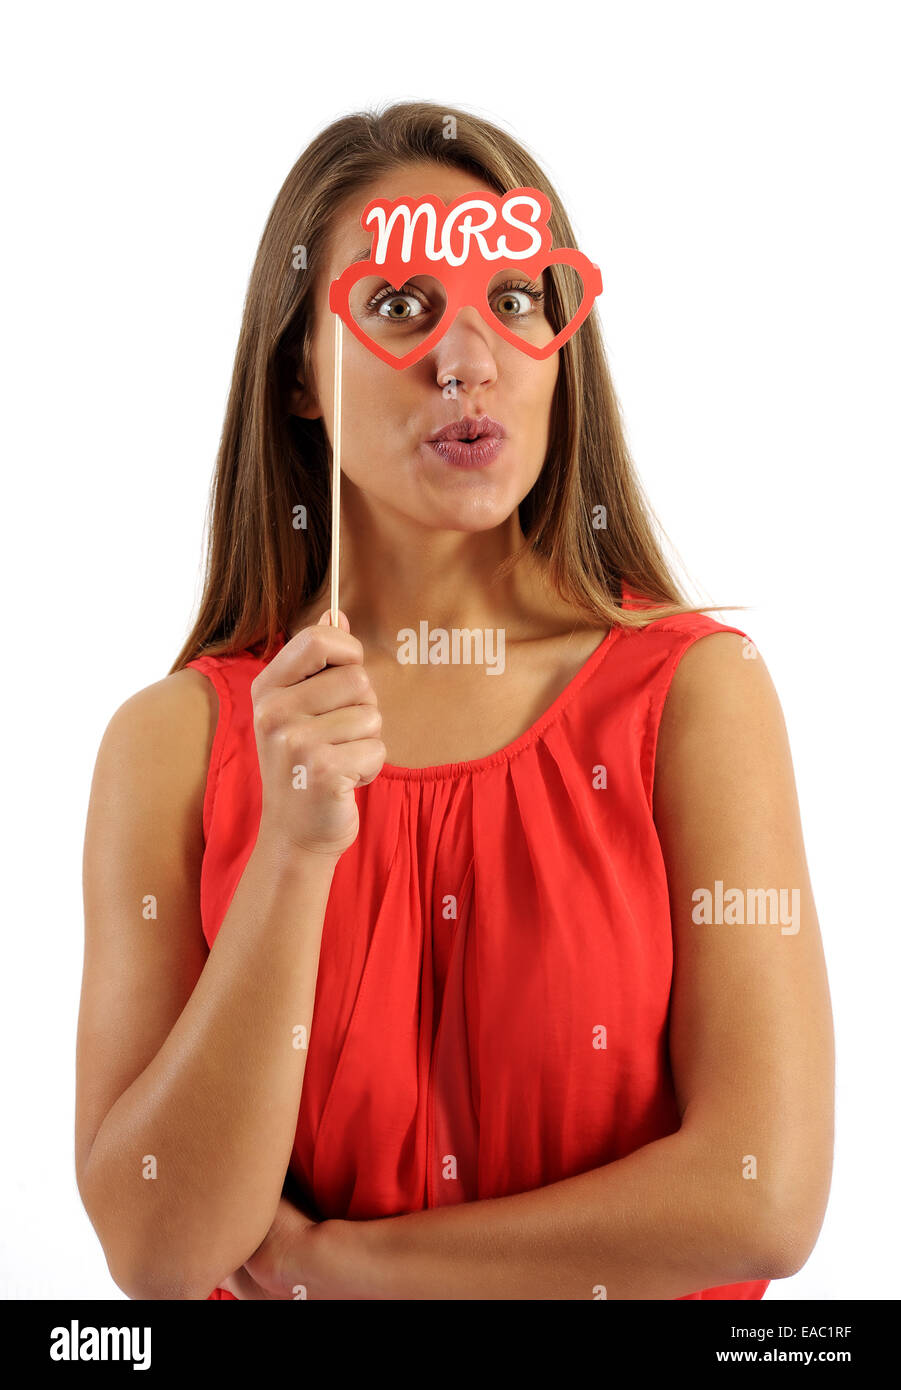 Pretty Woman holding Mrs Text Photo Booth Prop - Stock Image